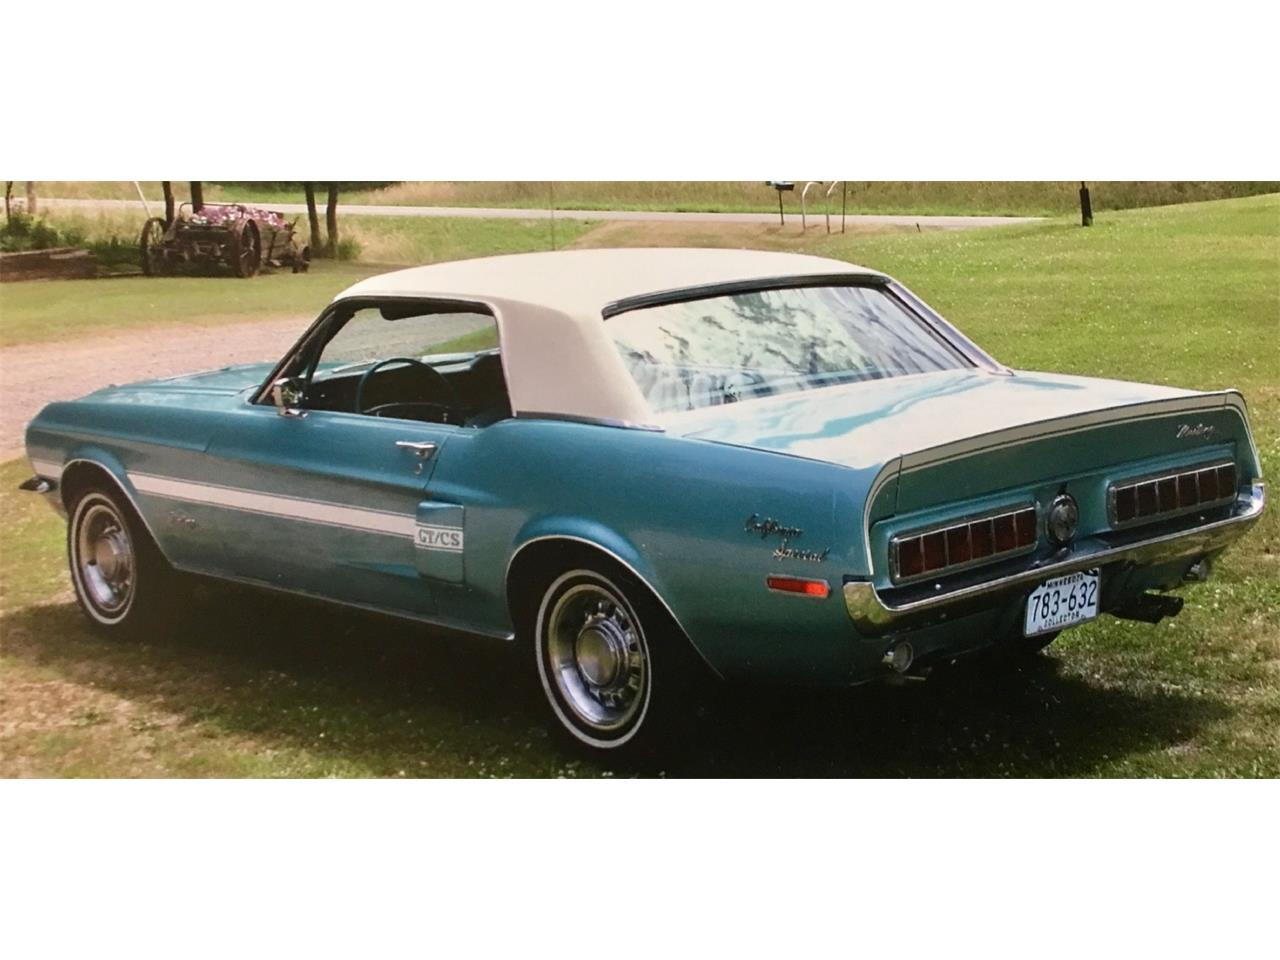 1968 Ford Mustang GT/CS (California Special) (CC-1033282) for sale in Annandale, Minnesota